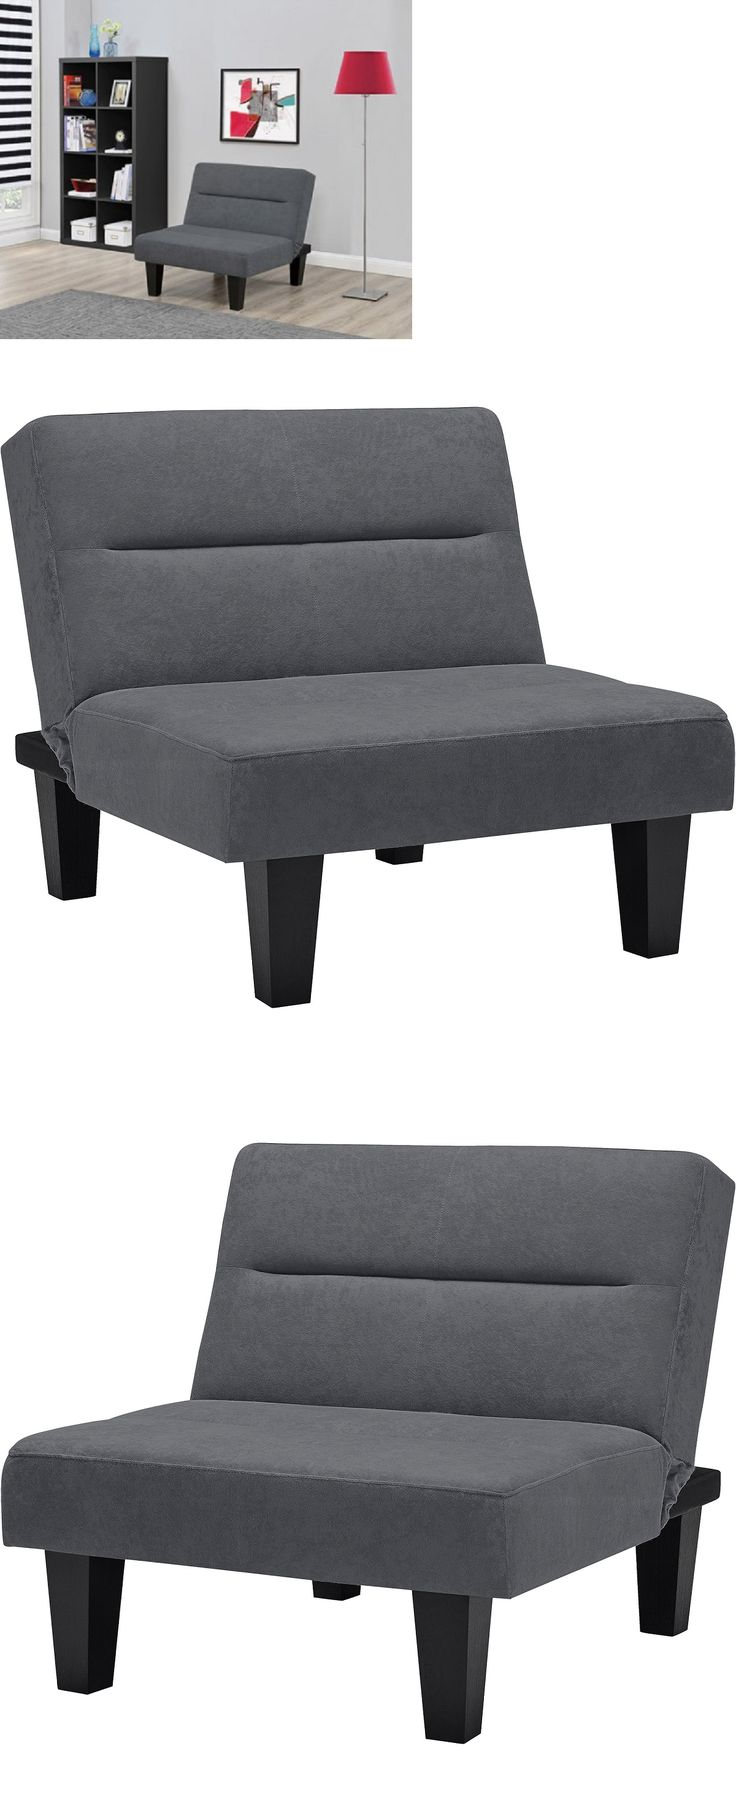 Burlap Chair Covers Ebay - Futons frames and covers 131579 futon chair flip cushion multi position microfiber gray living room